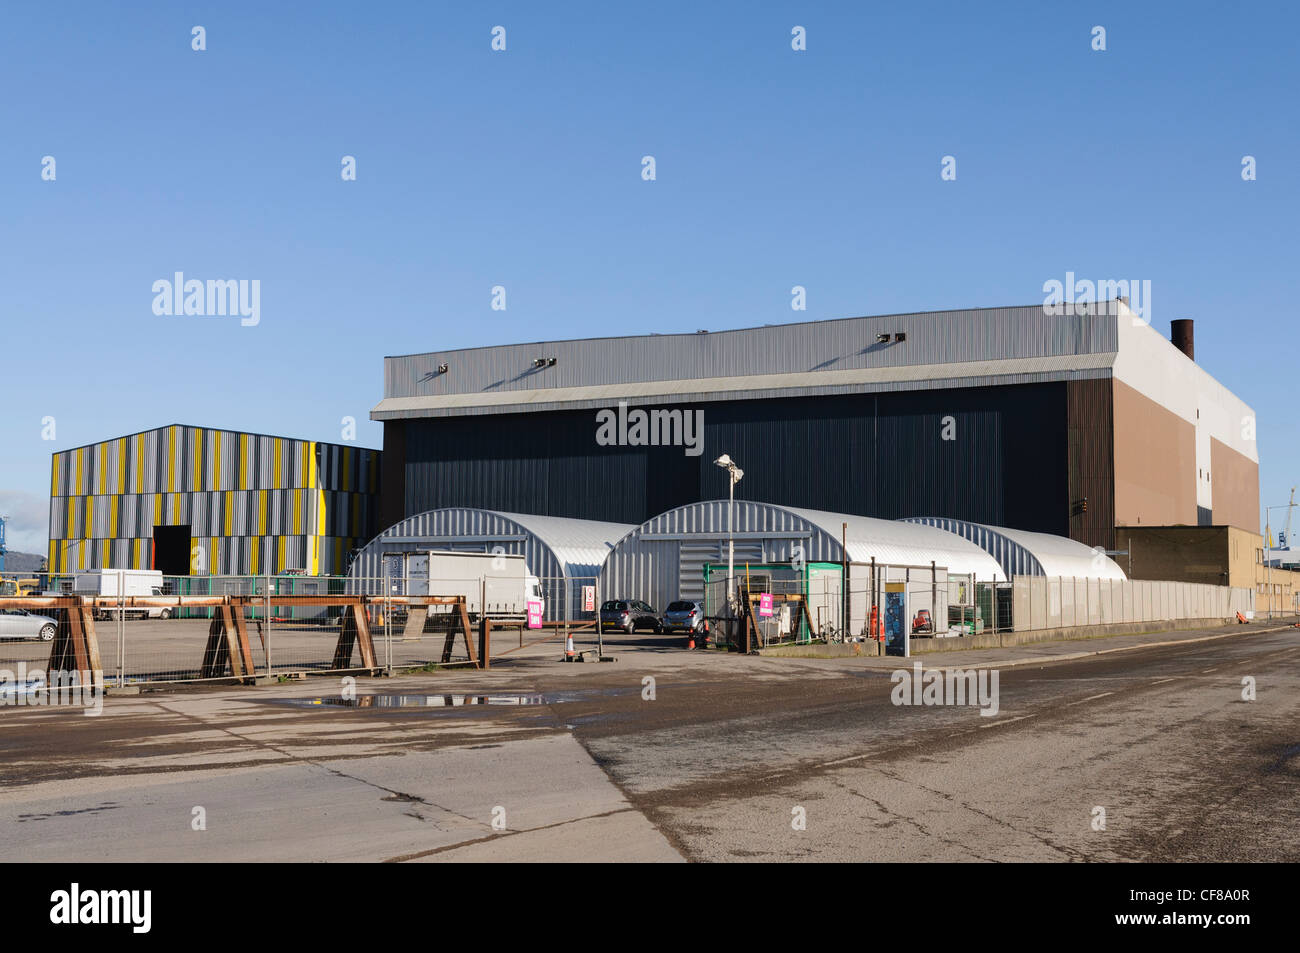 Paint Hall, Belfast - one of the largest film production studios in the world and main set for Game of Thrones internal - Stock Image